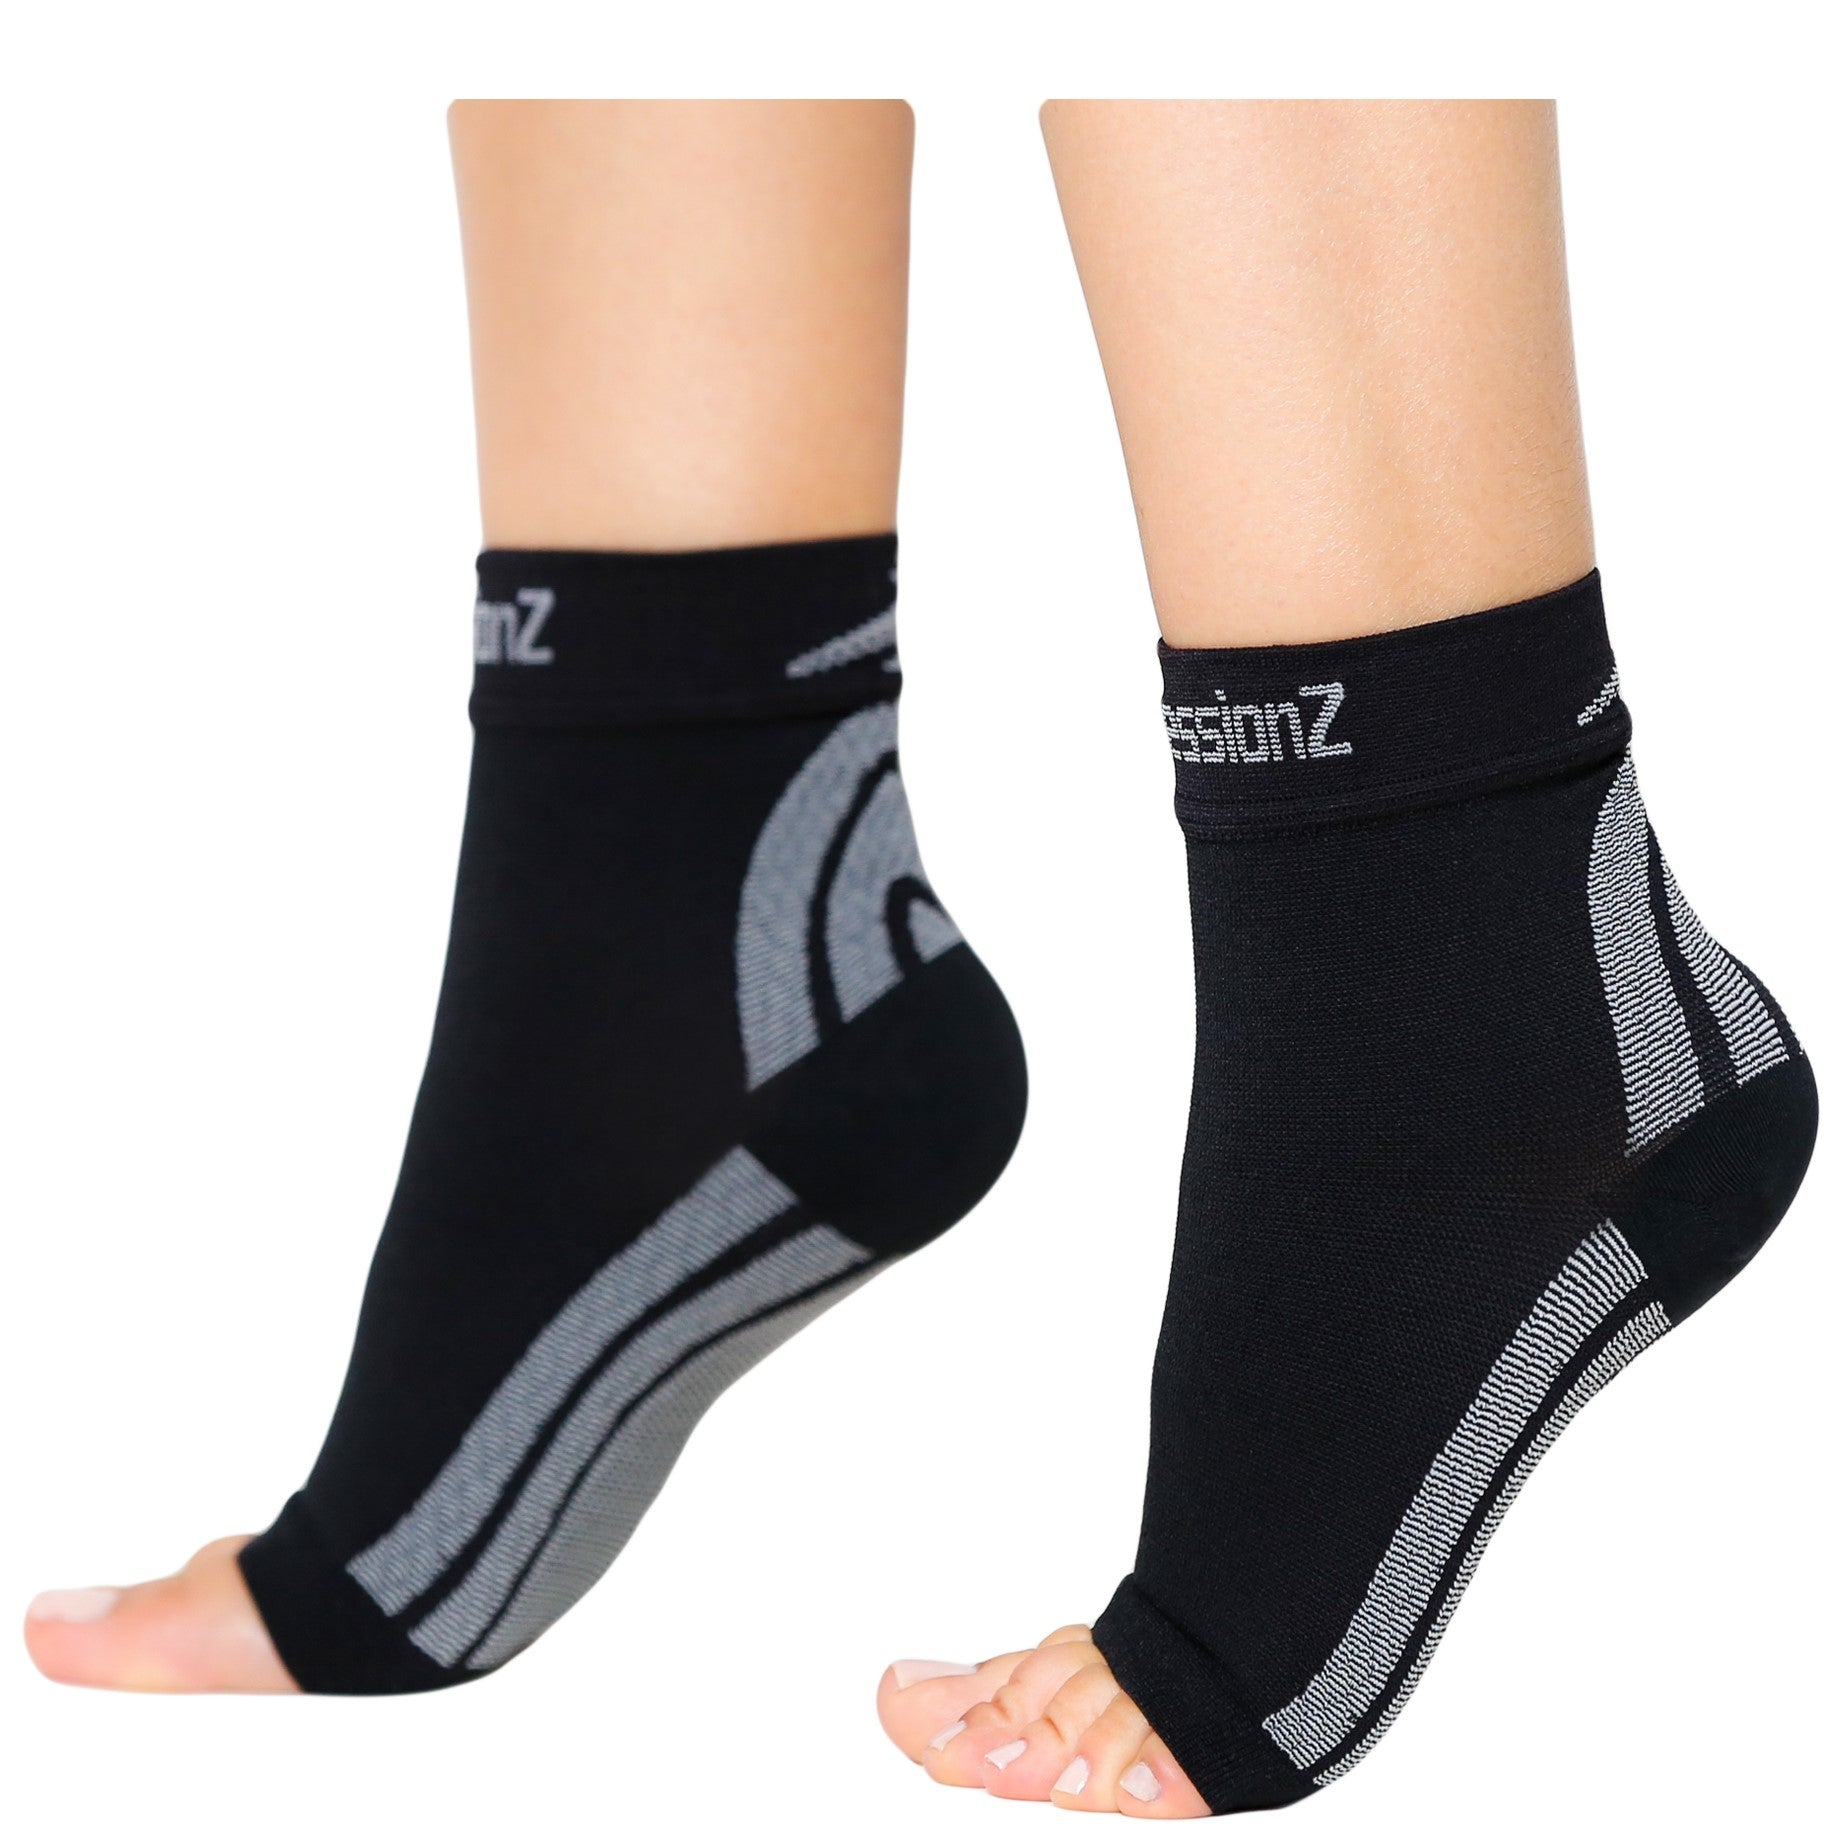 Foot Sleeves - Black